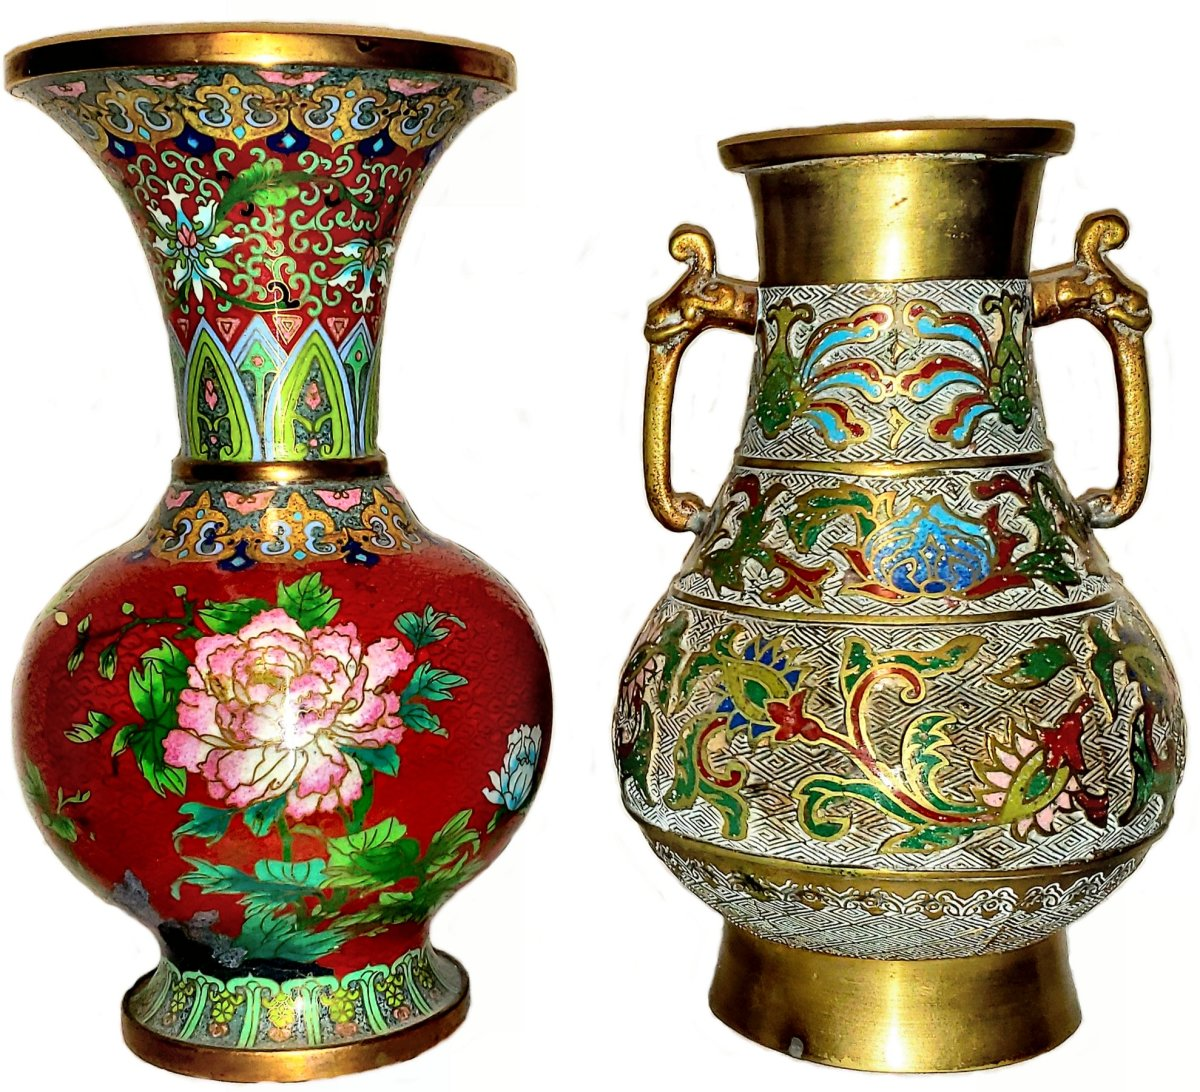 Champlevé and cloisonné objects of roughly the same size will differ considerably by weight, with the champlevé weighing more due to the thick metal base required for carving. The base metal in champlevé (shorter vase on the right) is apparent overall, while the base metal in cloisonné (taller vase on the left) is usually visible at the base, rim and interior; the small partitions in cloisonné are clearly visible on close examination. This image compares a ten-inch cloisonné vase with a nine-inch champlevé vase. Although the champlevé vase is shorter by an inch, it weighs a pound more due to the thickness of the base metal.